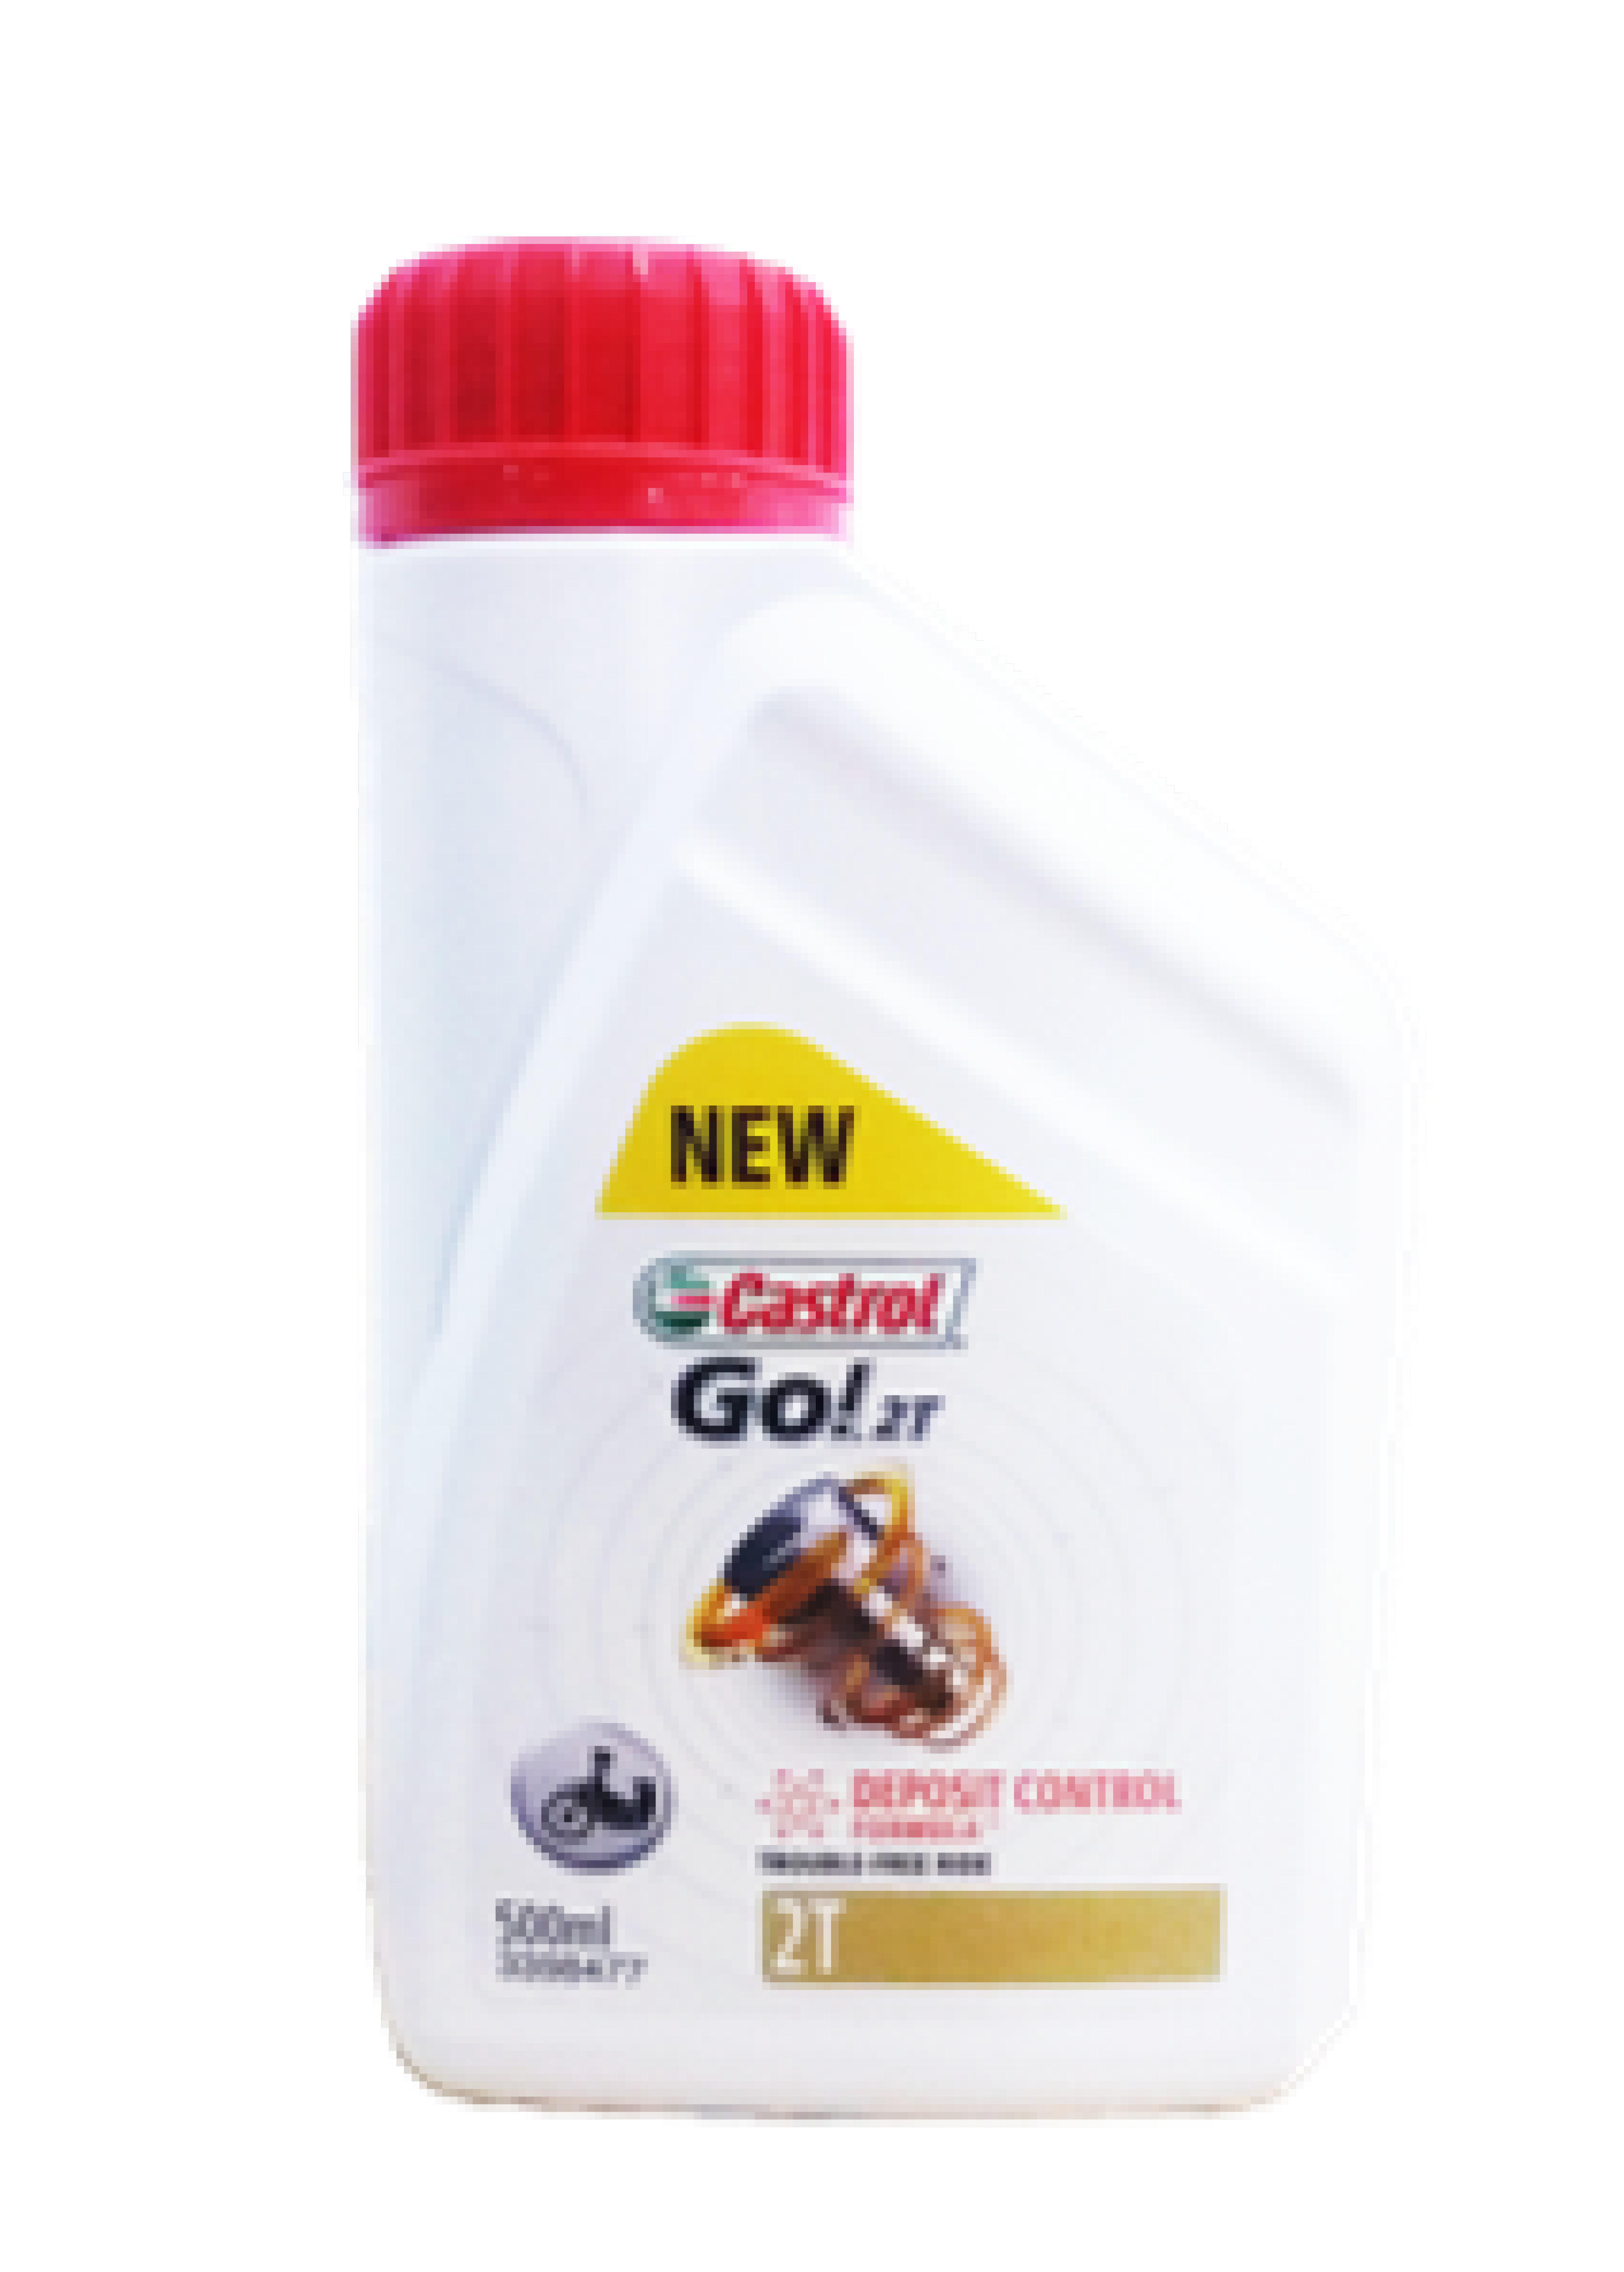 2 CYCLE ENGINE OILS | MOTORCYCLE OIL & FLUIDS | Home